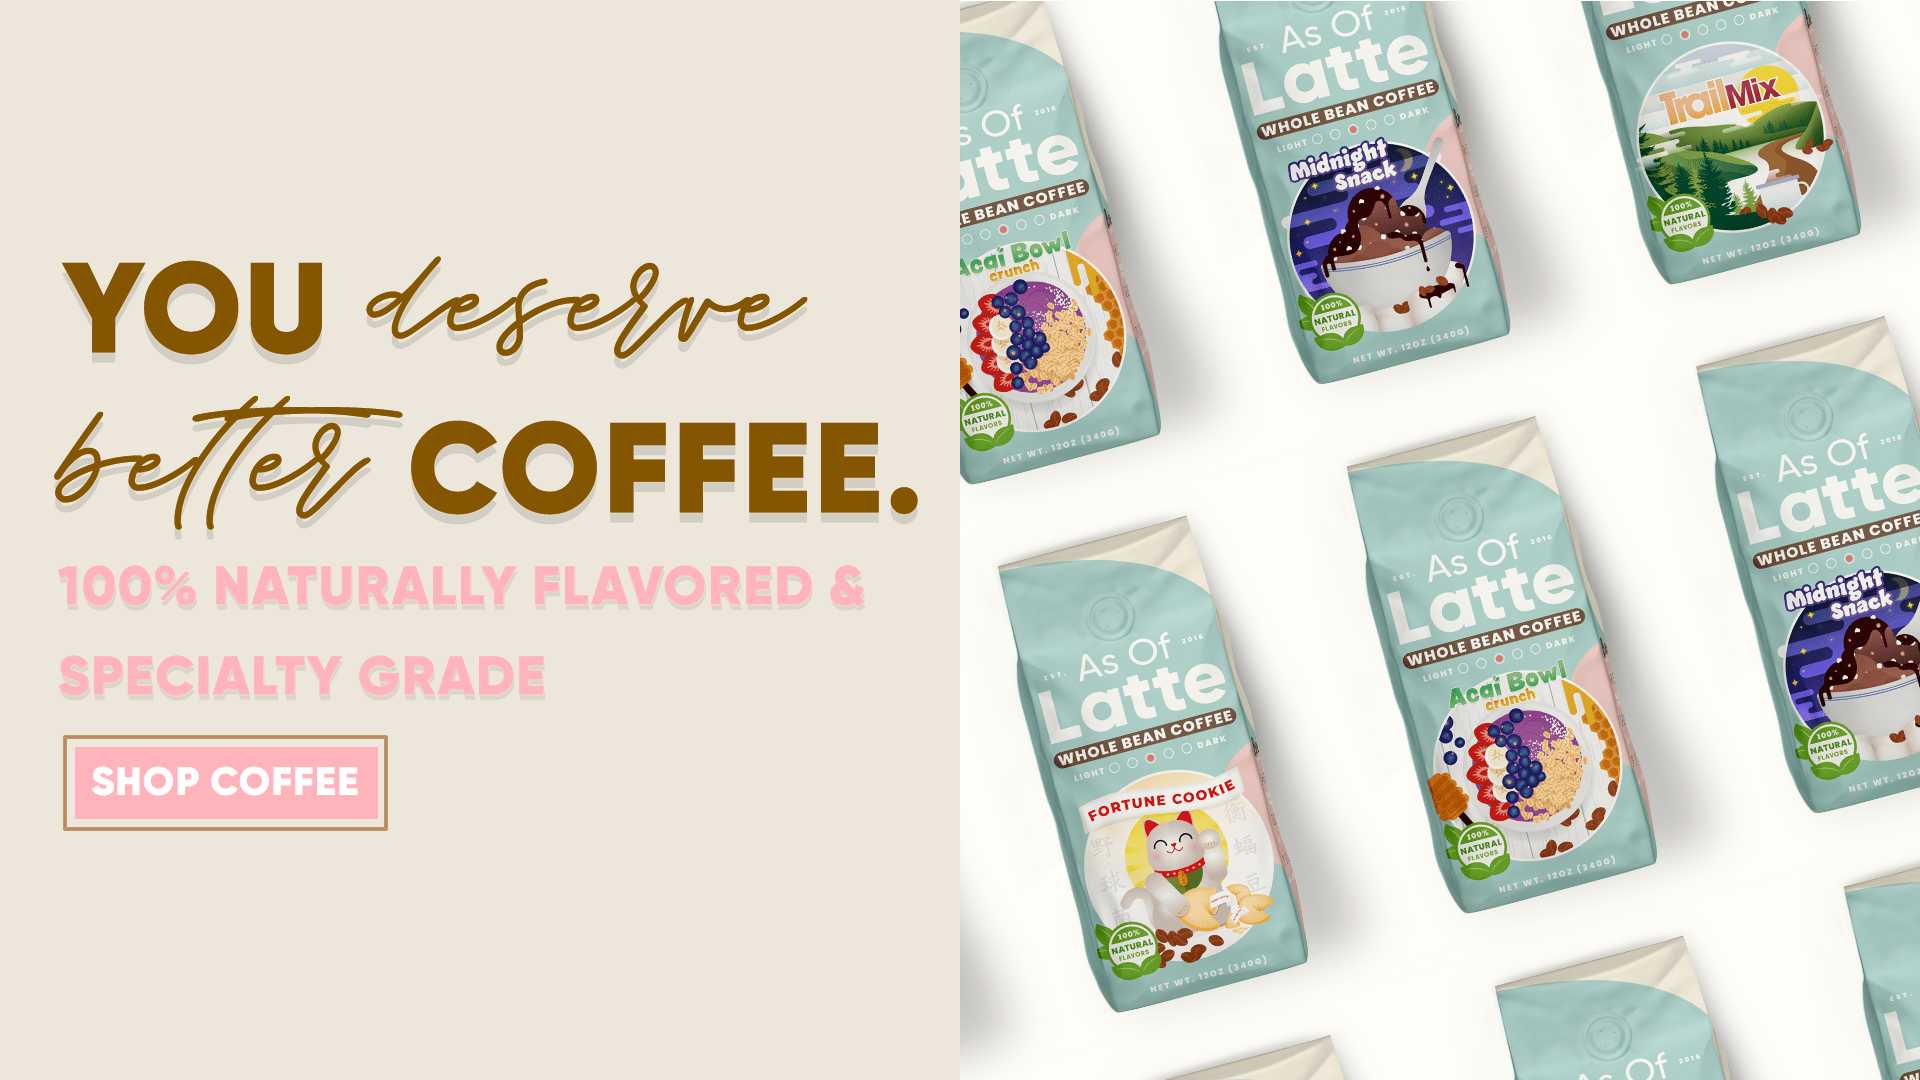 As Of Latte - The Brand For Coffee Lovers - Flavored Coffee